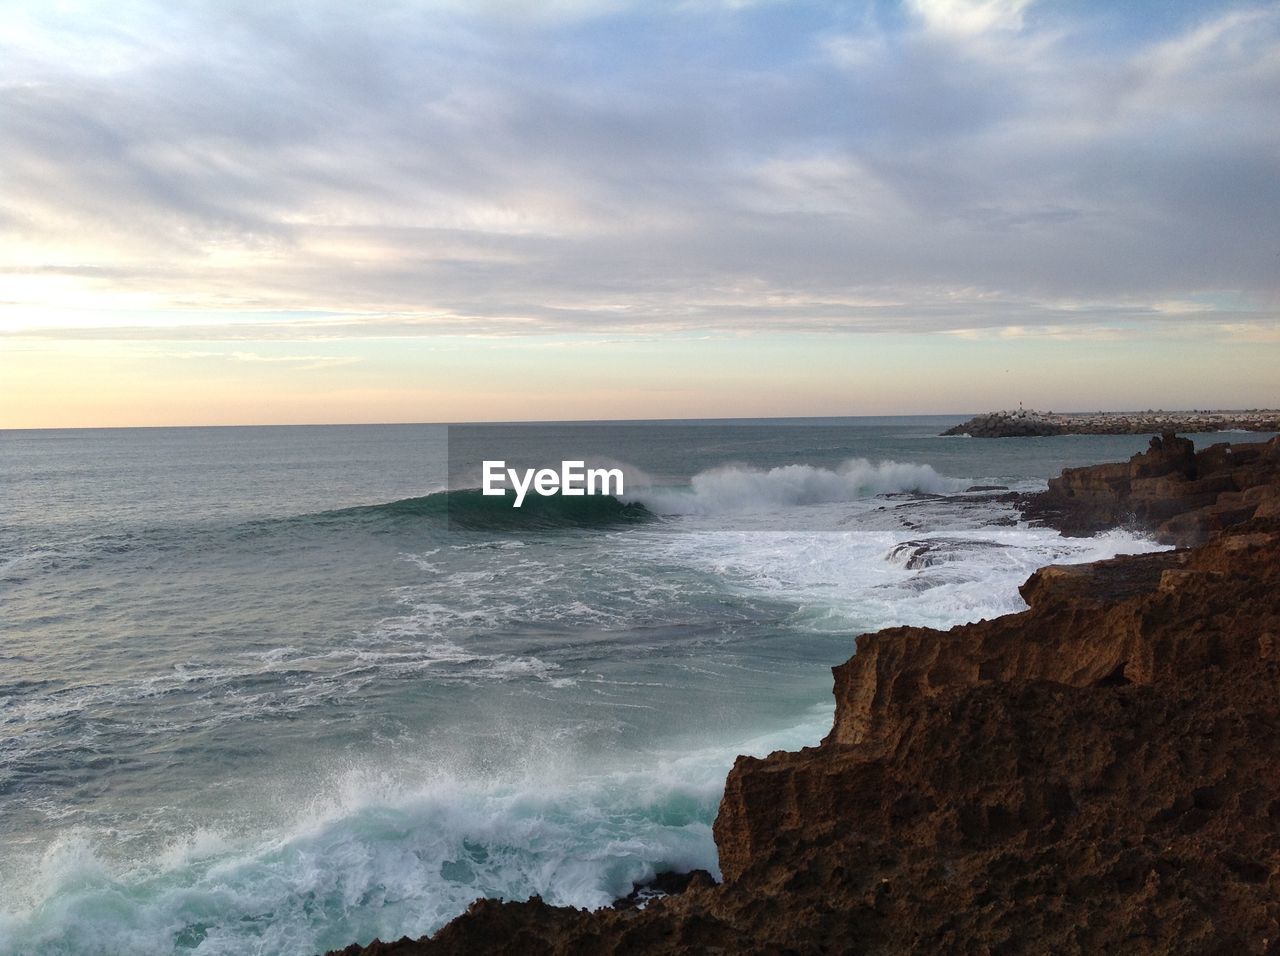 sea, water, sky, beauty in nature, scenics - nature, horizon over water, cloud - sky, beach, horizon, land, motion, rock, sunset, wave, nature, rock - object, aquatic sport, tranquility, tranquil scene, no people, outdoors, power in nature, rocky coastline